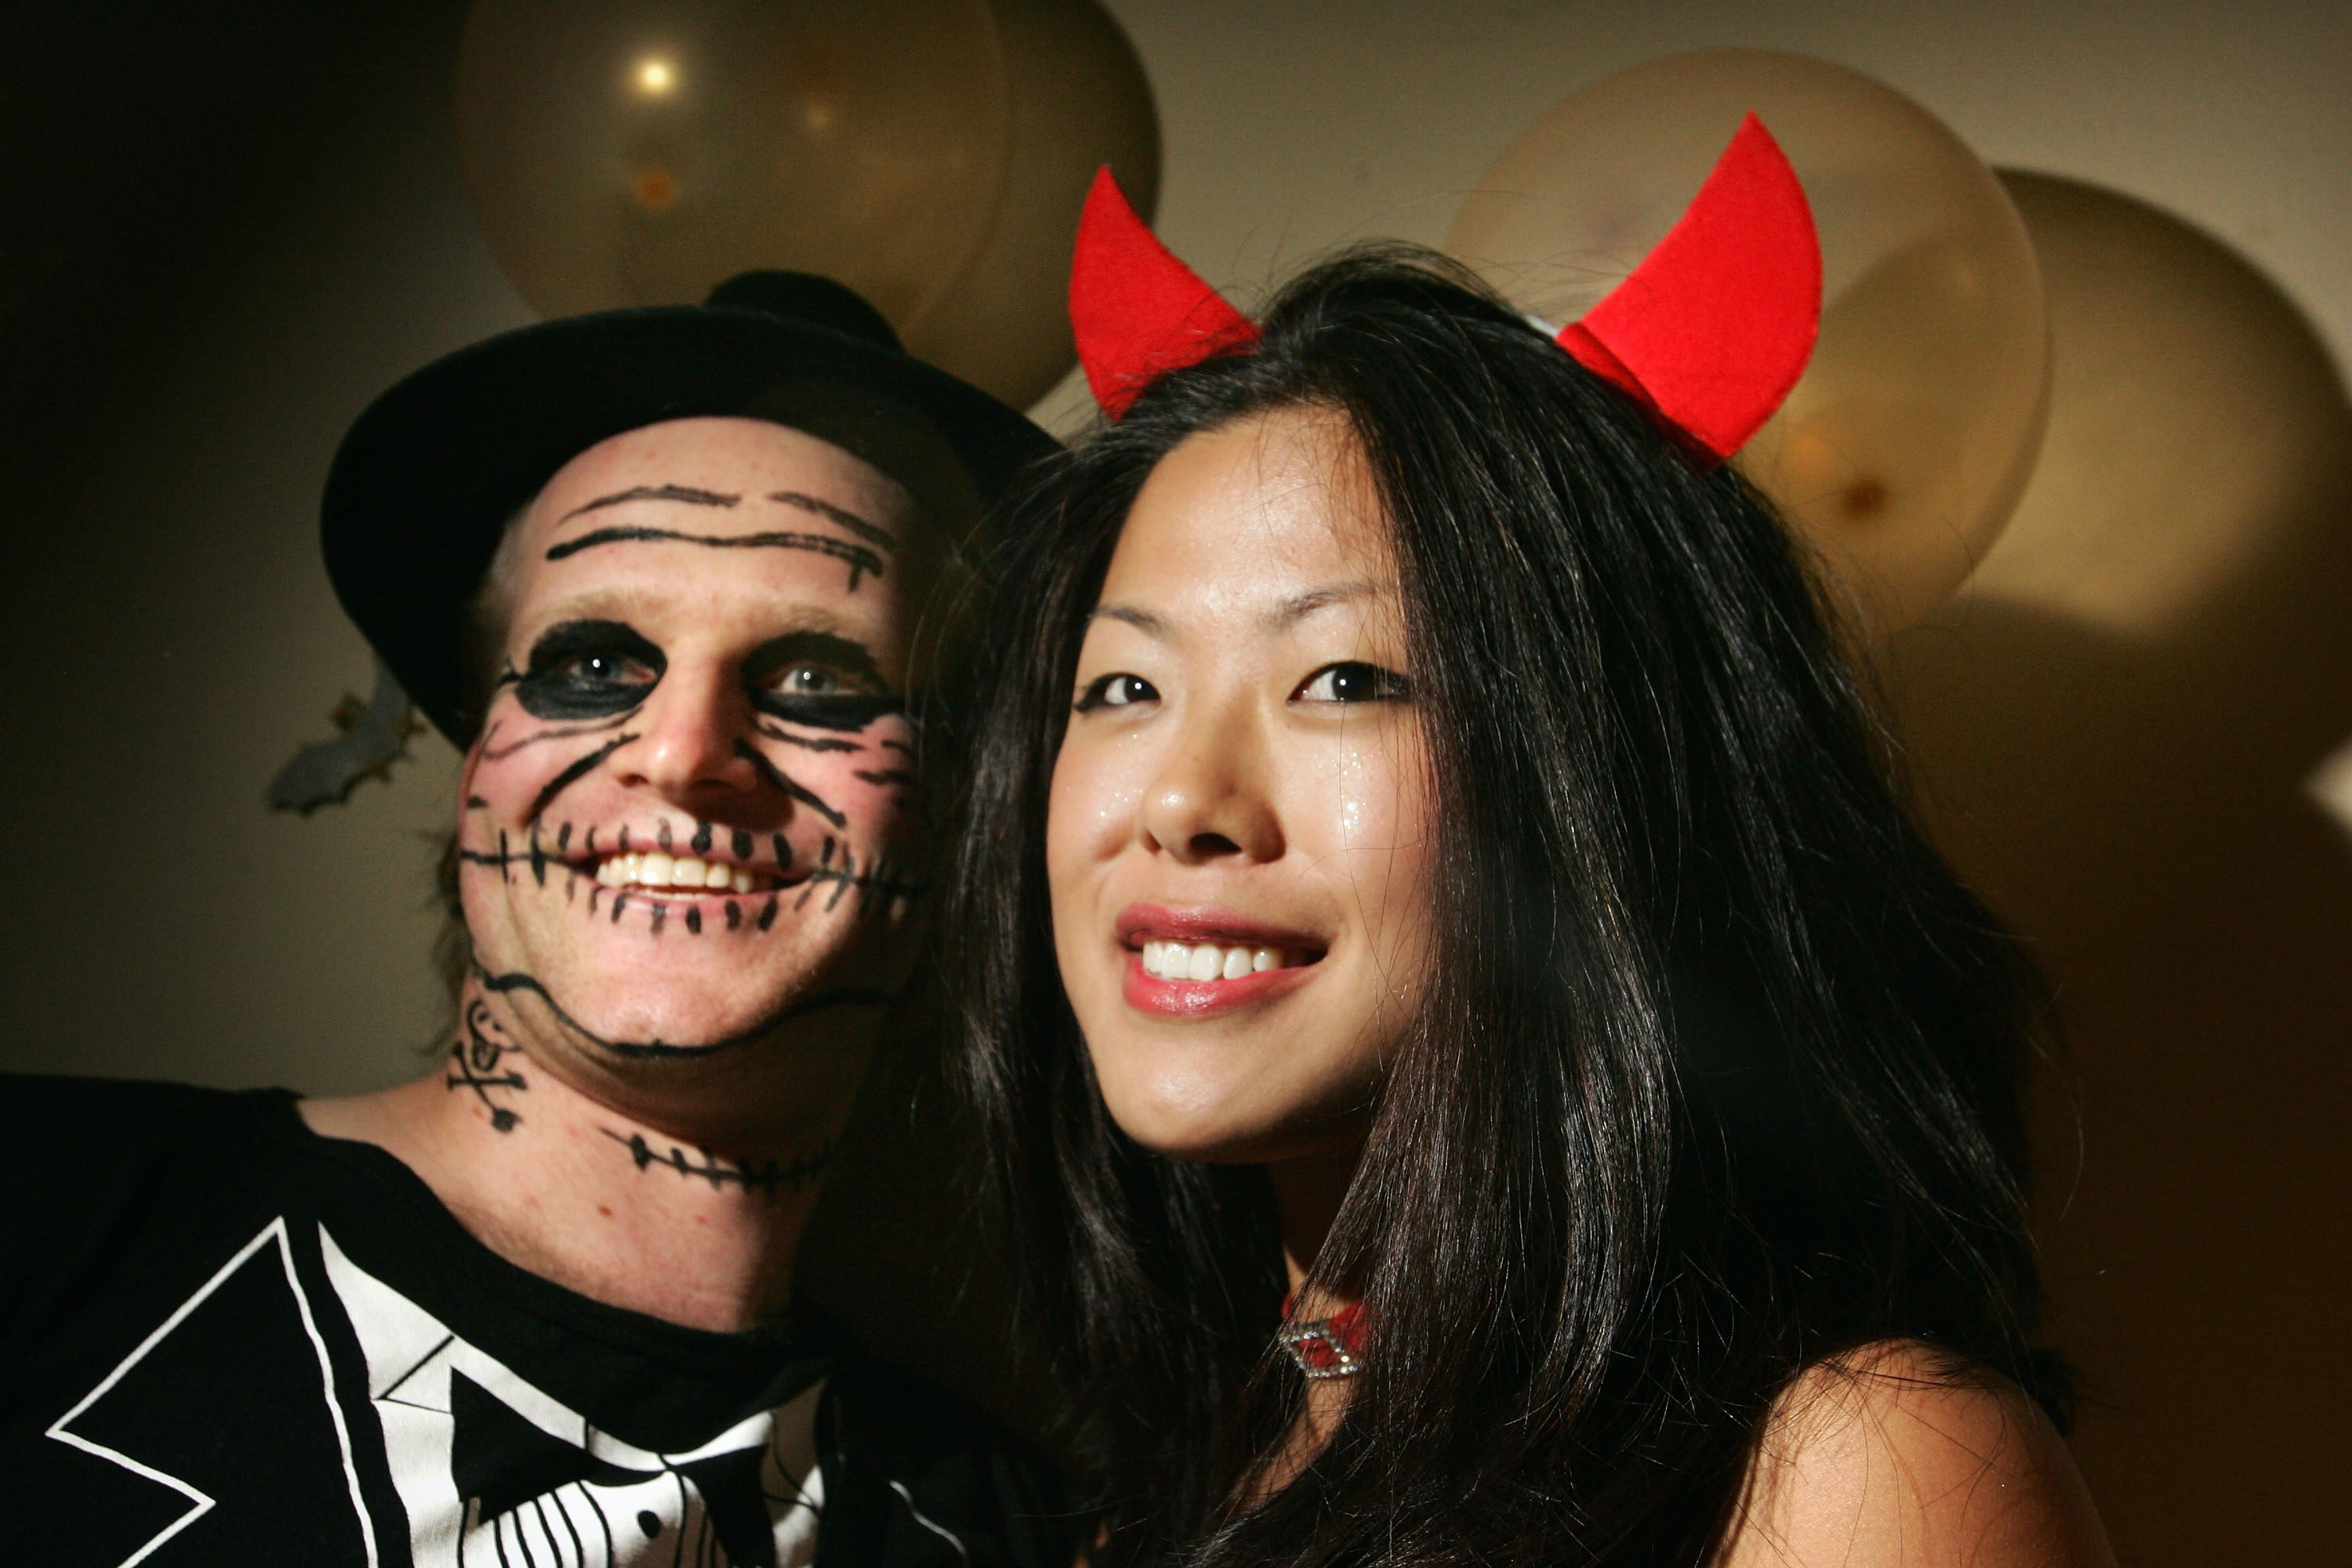 13 Easy Couples Halloween Costume Ideas For 2016 That Are Cute Without Being Complicated  sc 1 st  Bustle & 13 Easy Couples Halloween Costume Ideas For 2016 That Are Cute ...